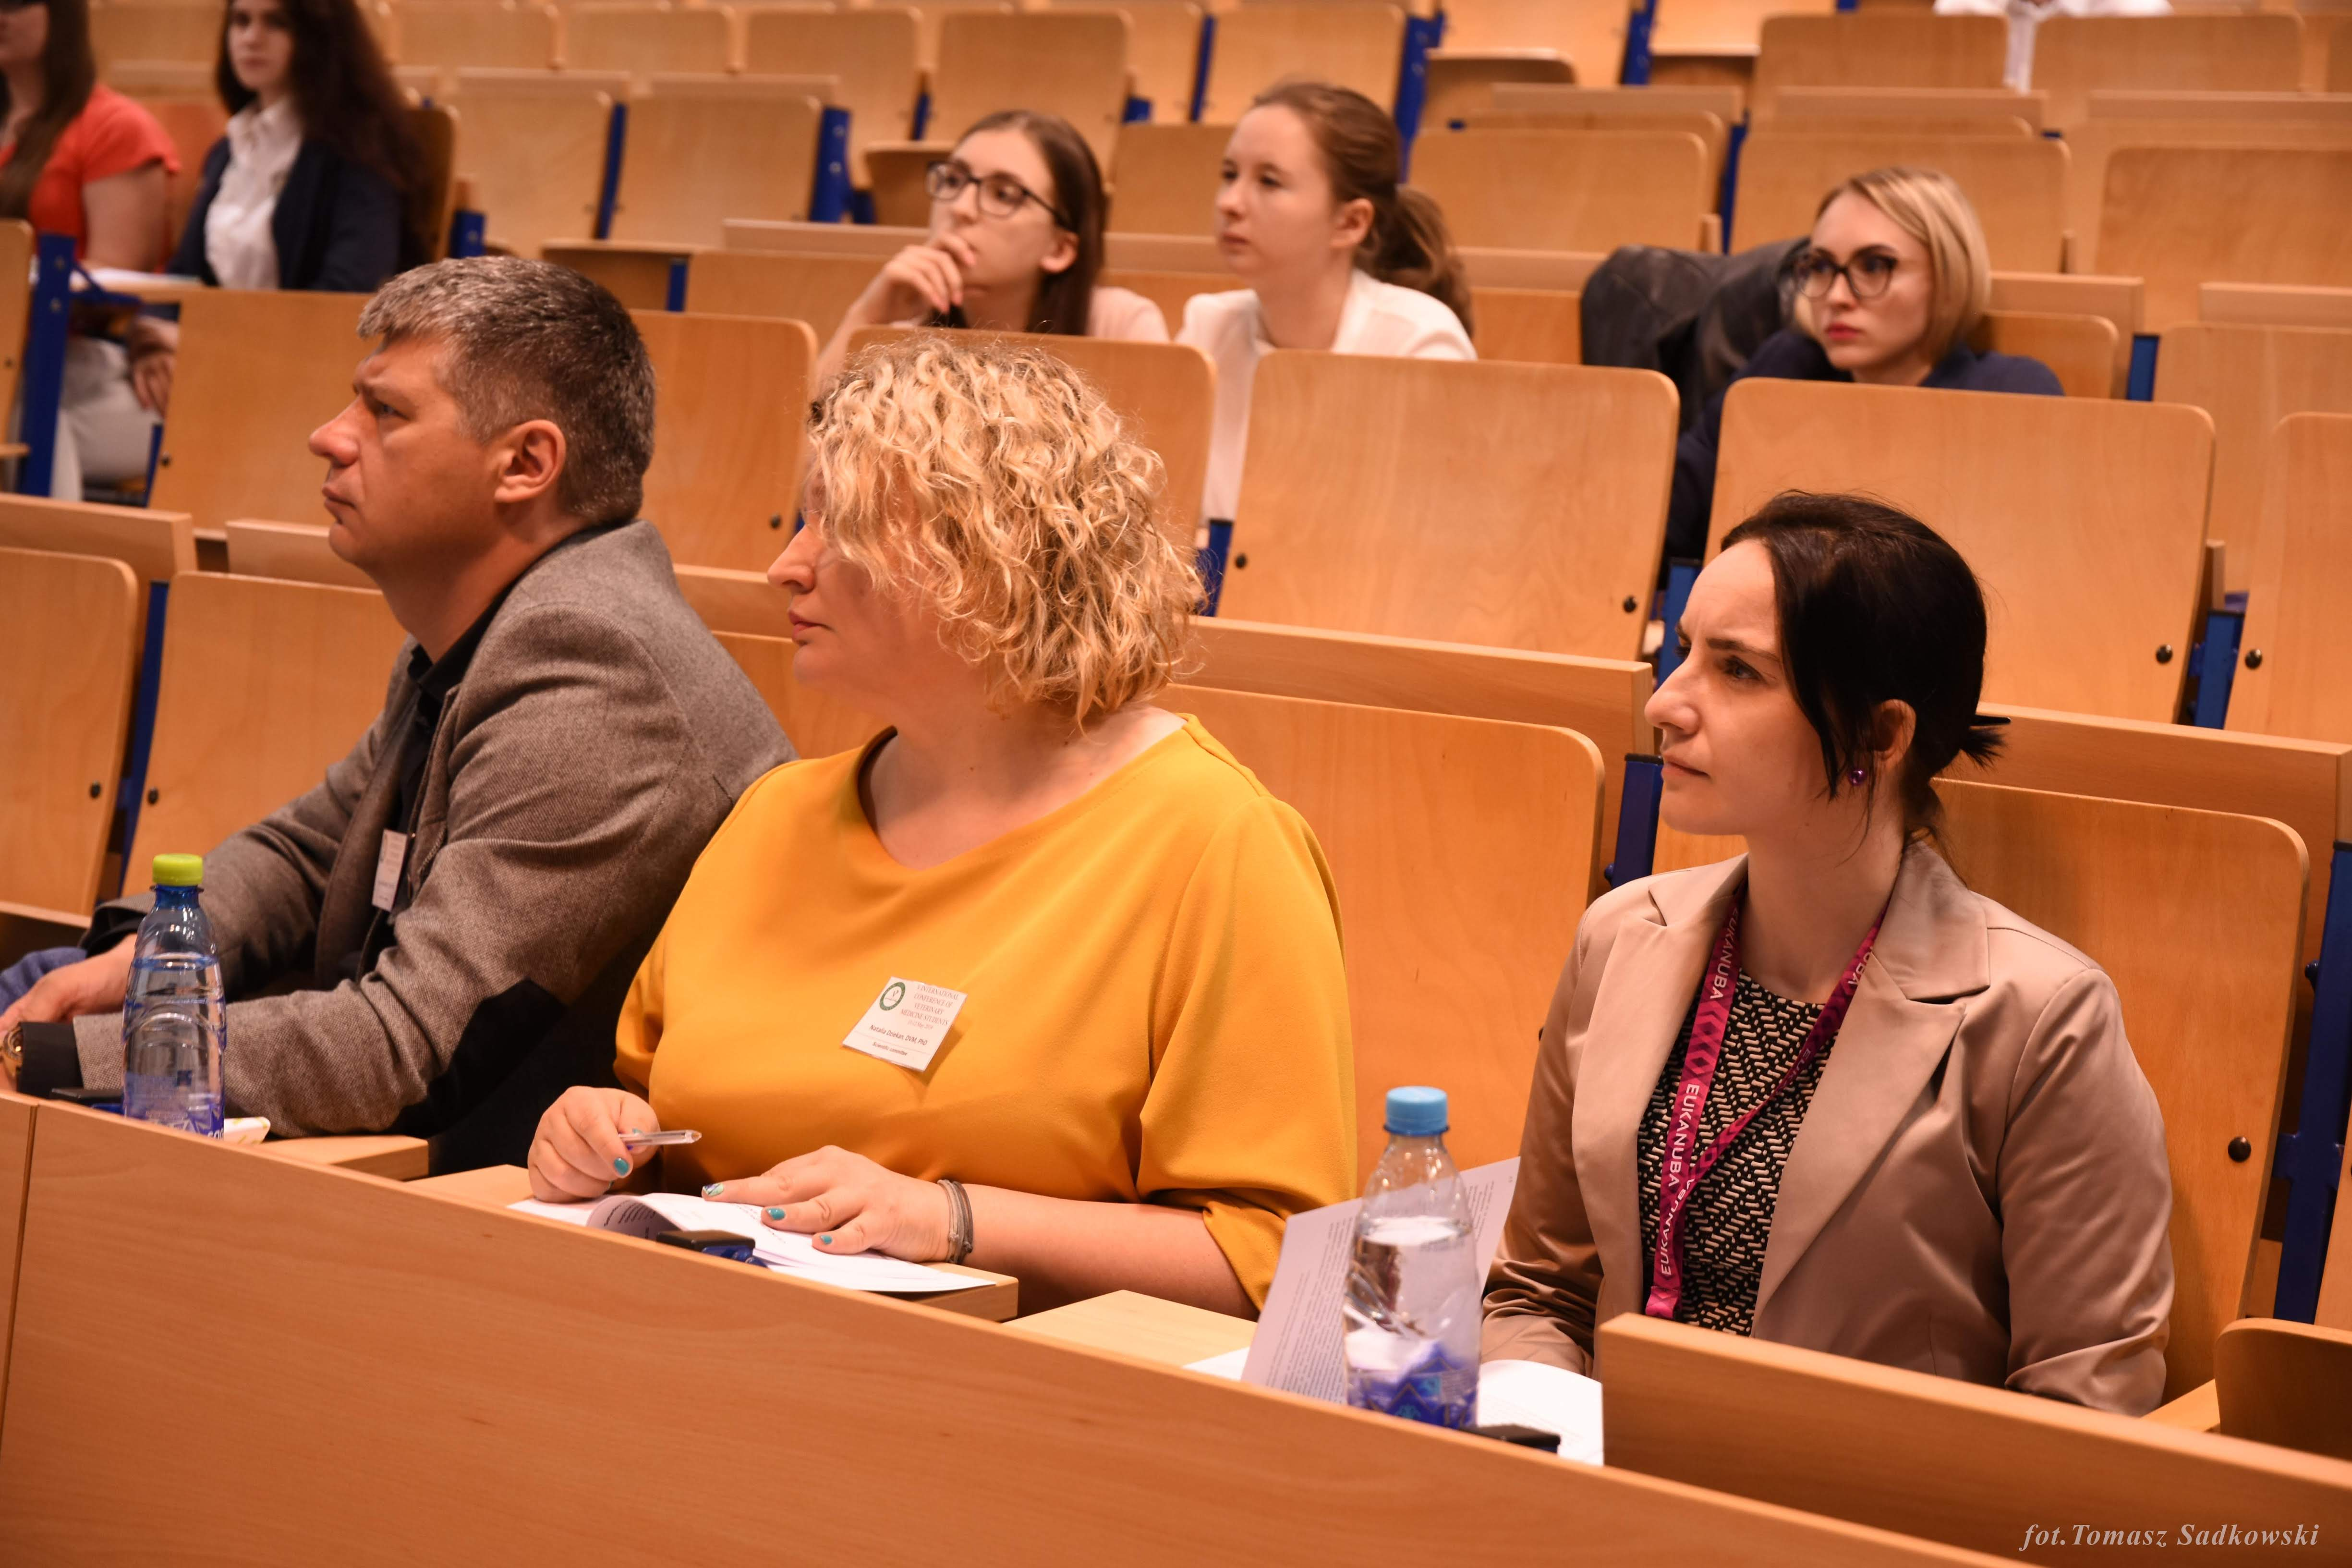 from the left Lucjan Witkowski DVM PhD, Natalia Dziekan DVM PhD, Izabella Dolka DVM PhD during farm animals session